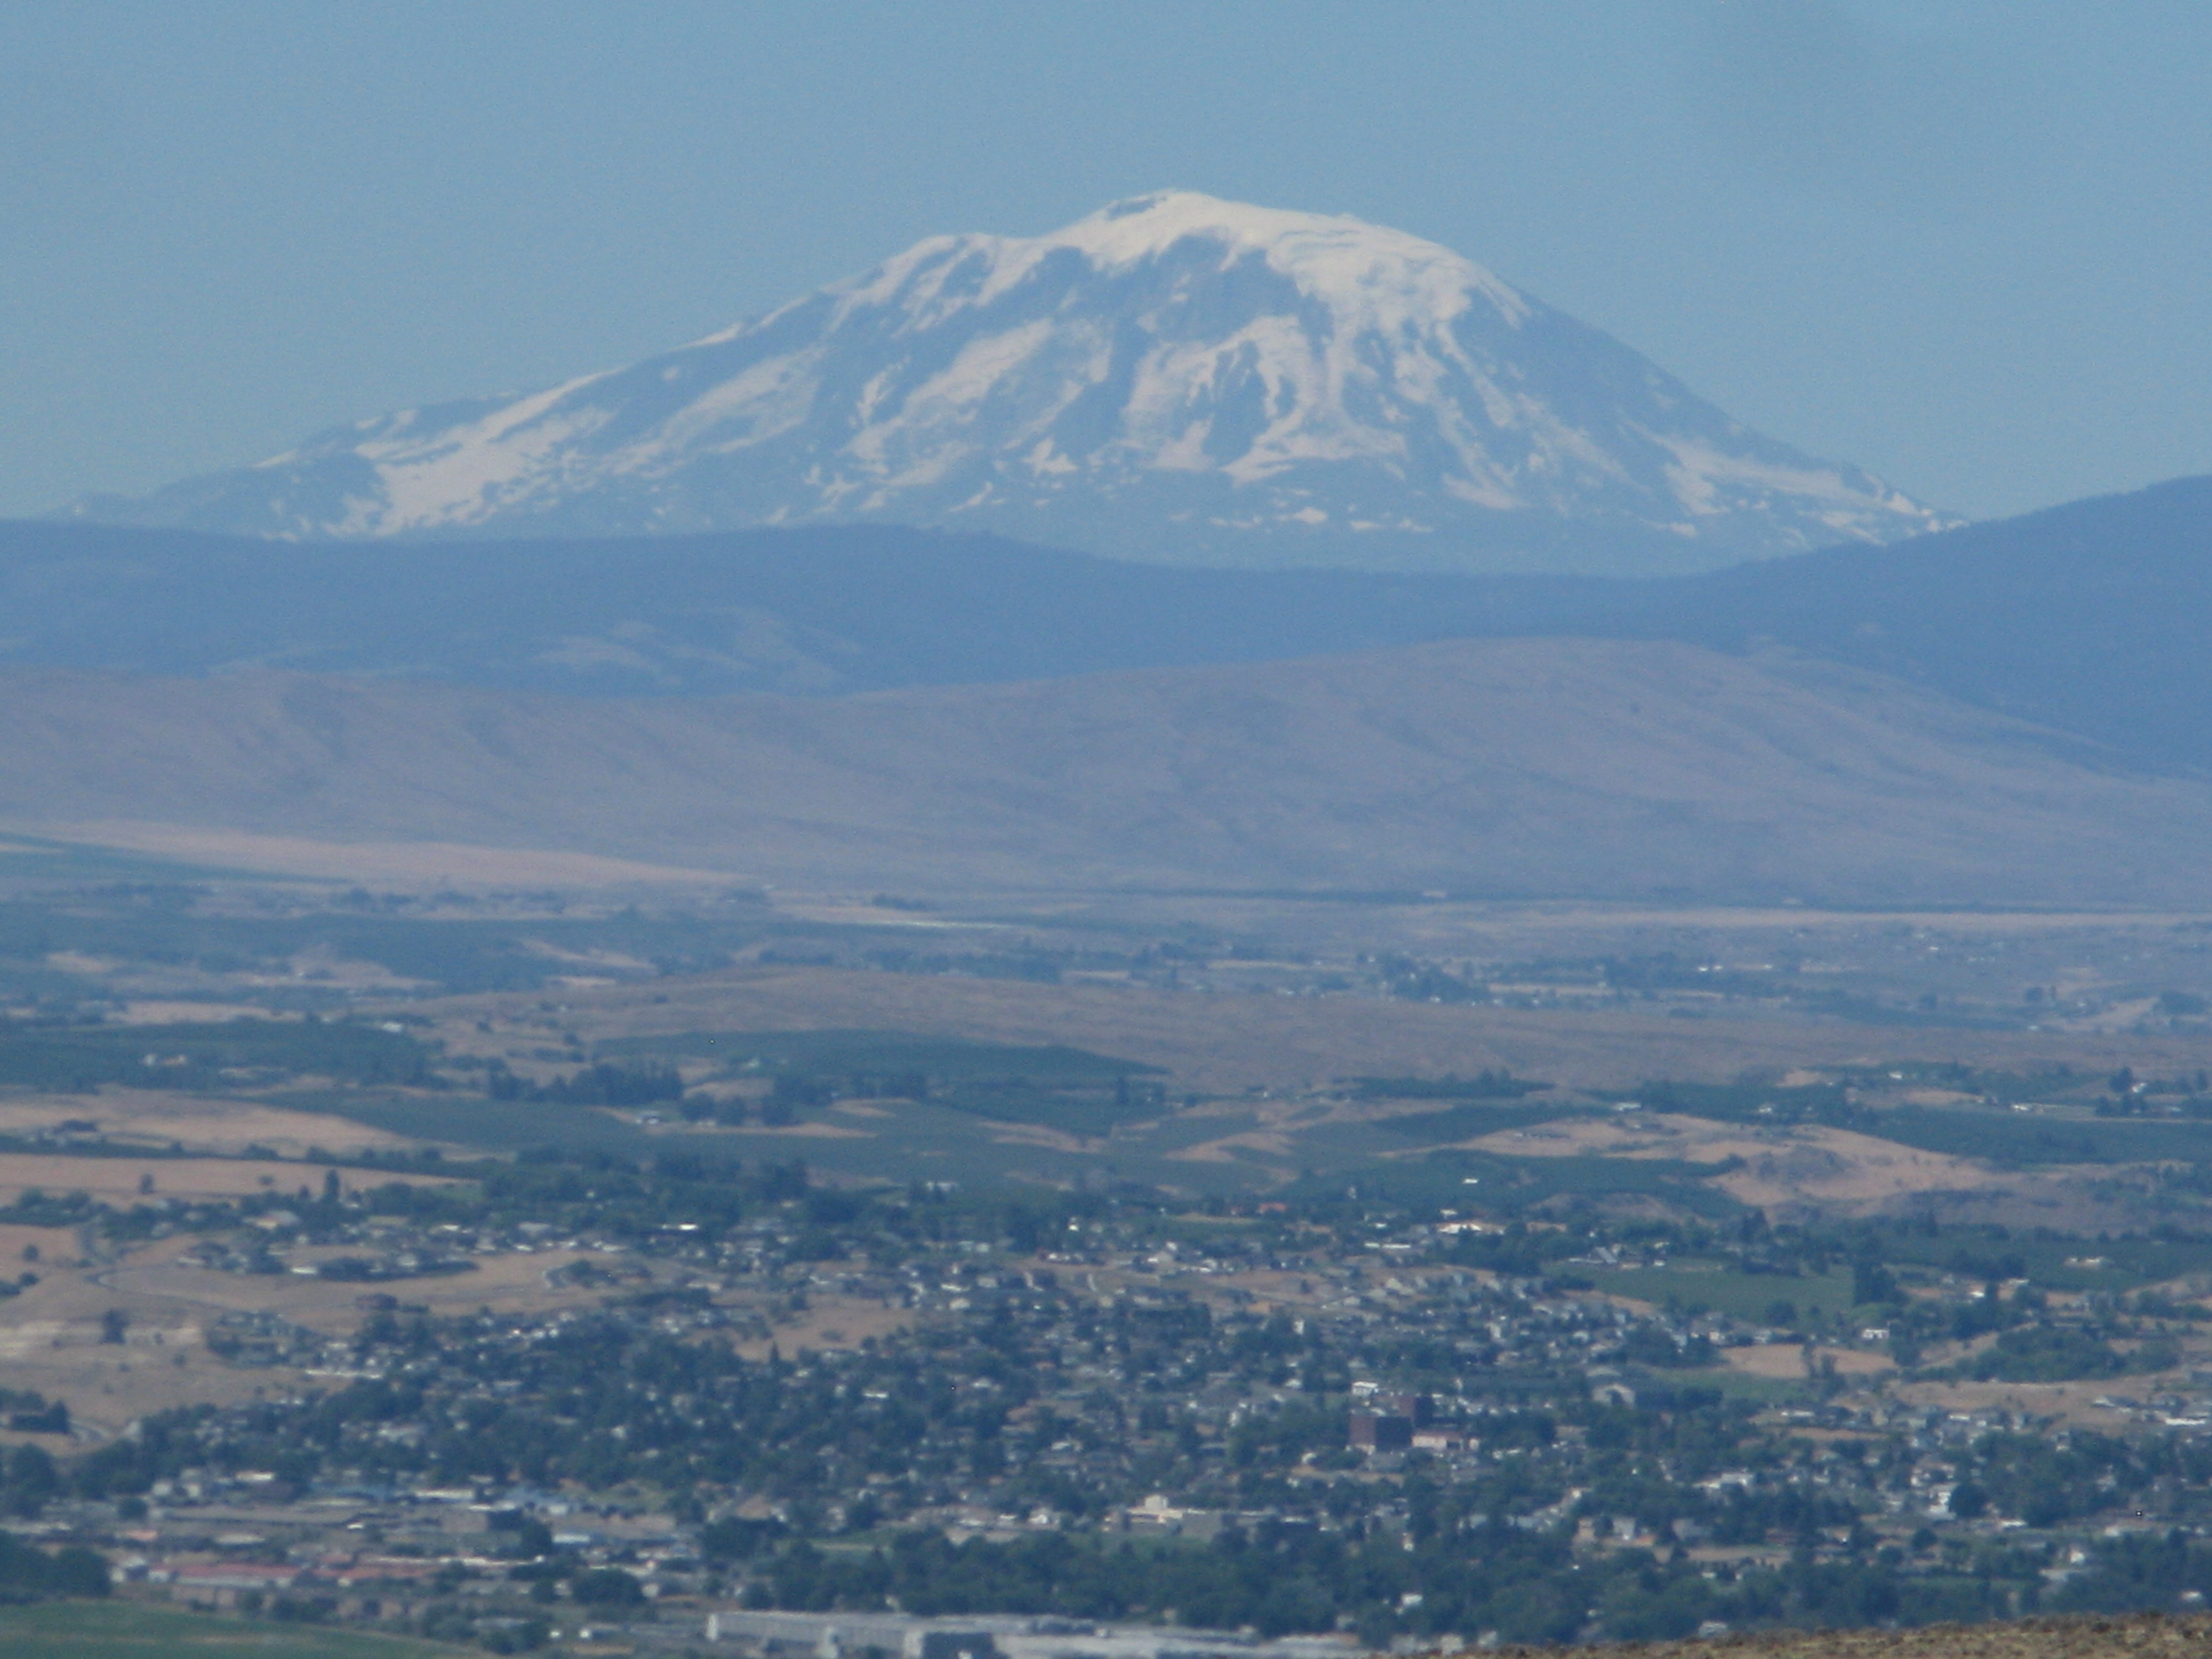 Mt Adams from a distance.